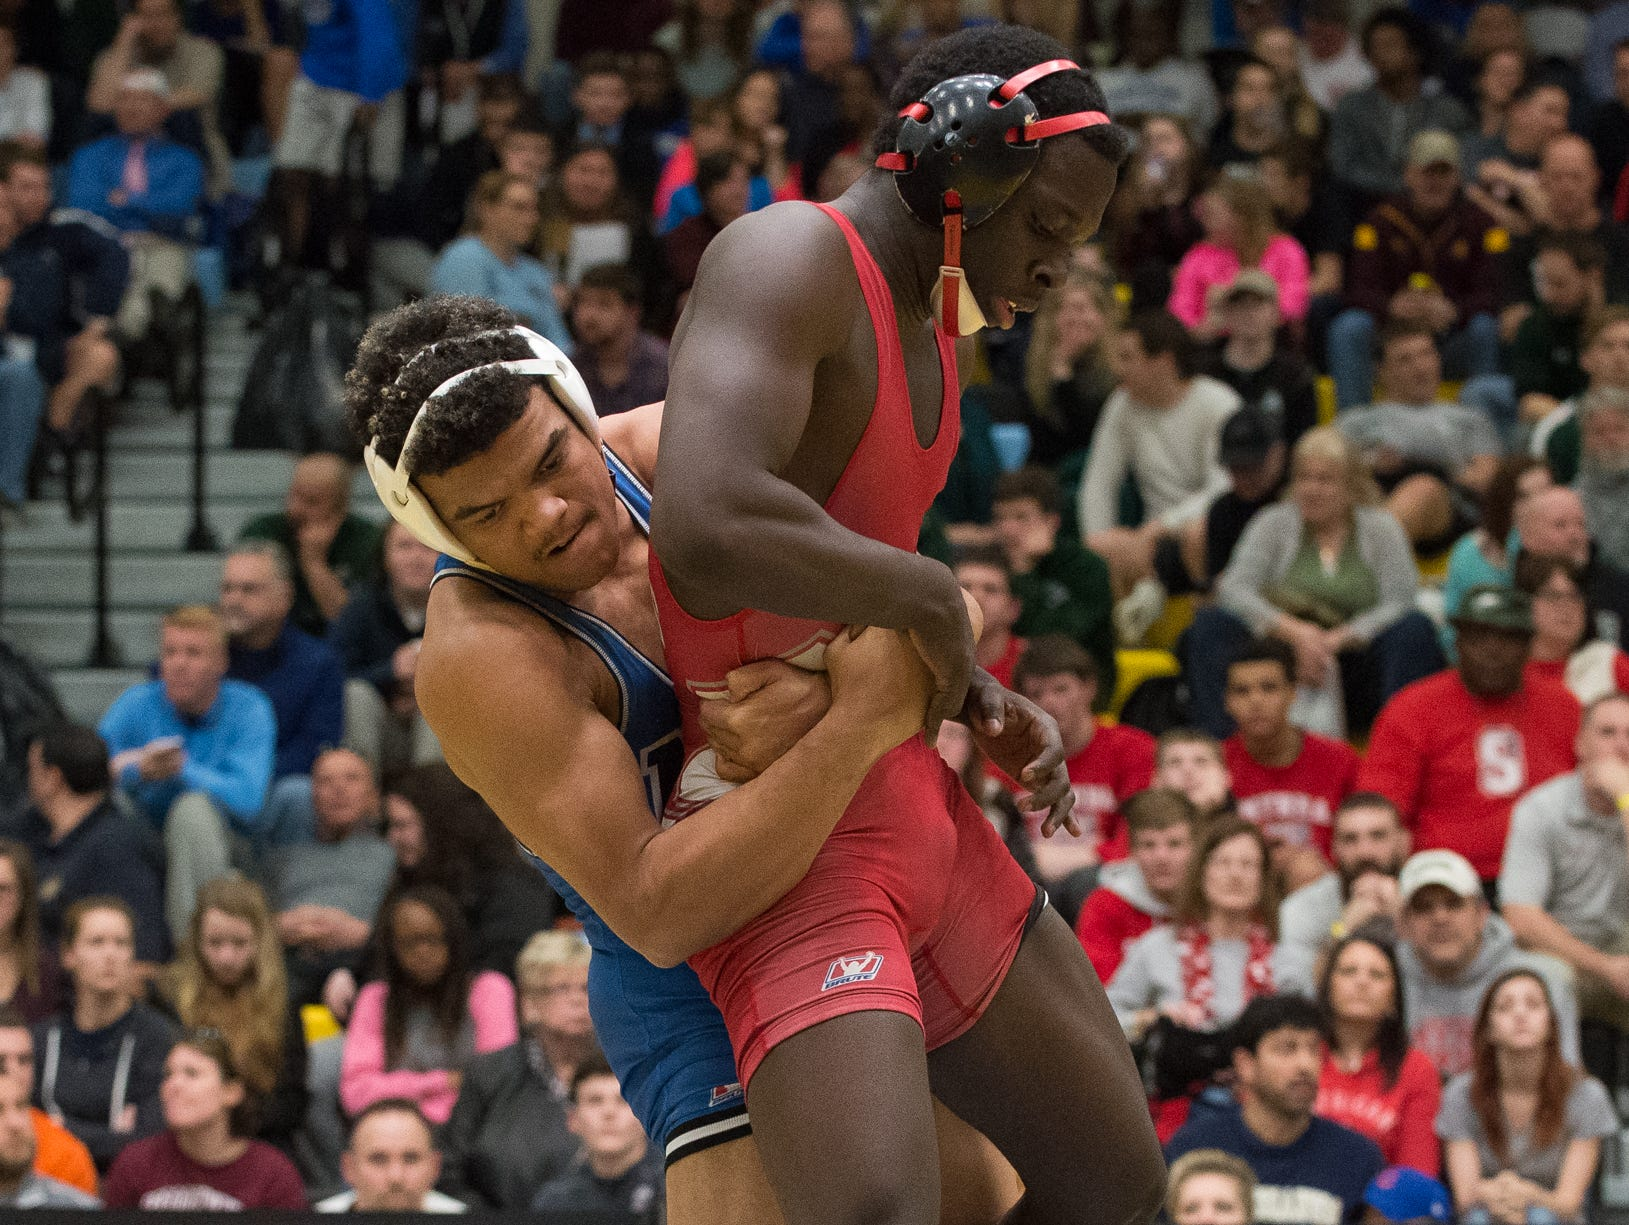 Middletown's Isiah Mitchell picks up Smyrna's Larsen Wilson in the 170 pound quarterfinals at the DIAA Individual State Tournament at Cape Henlopen High School.